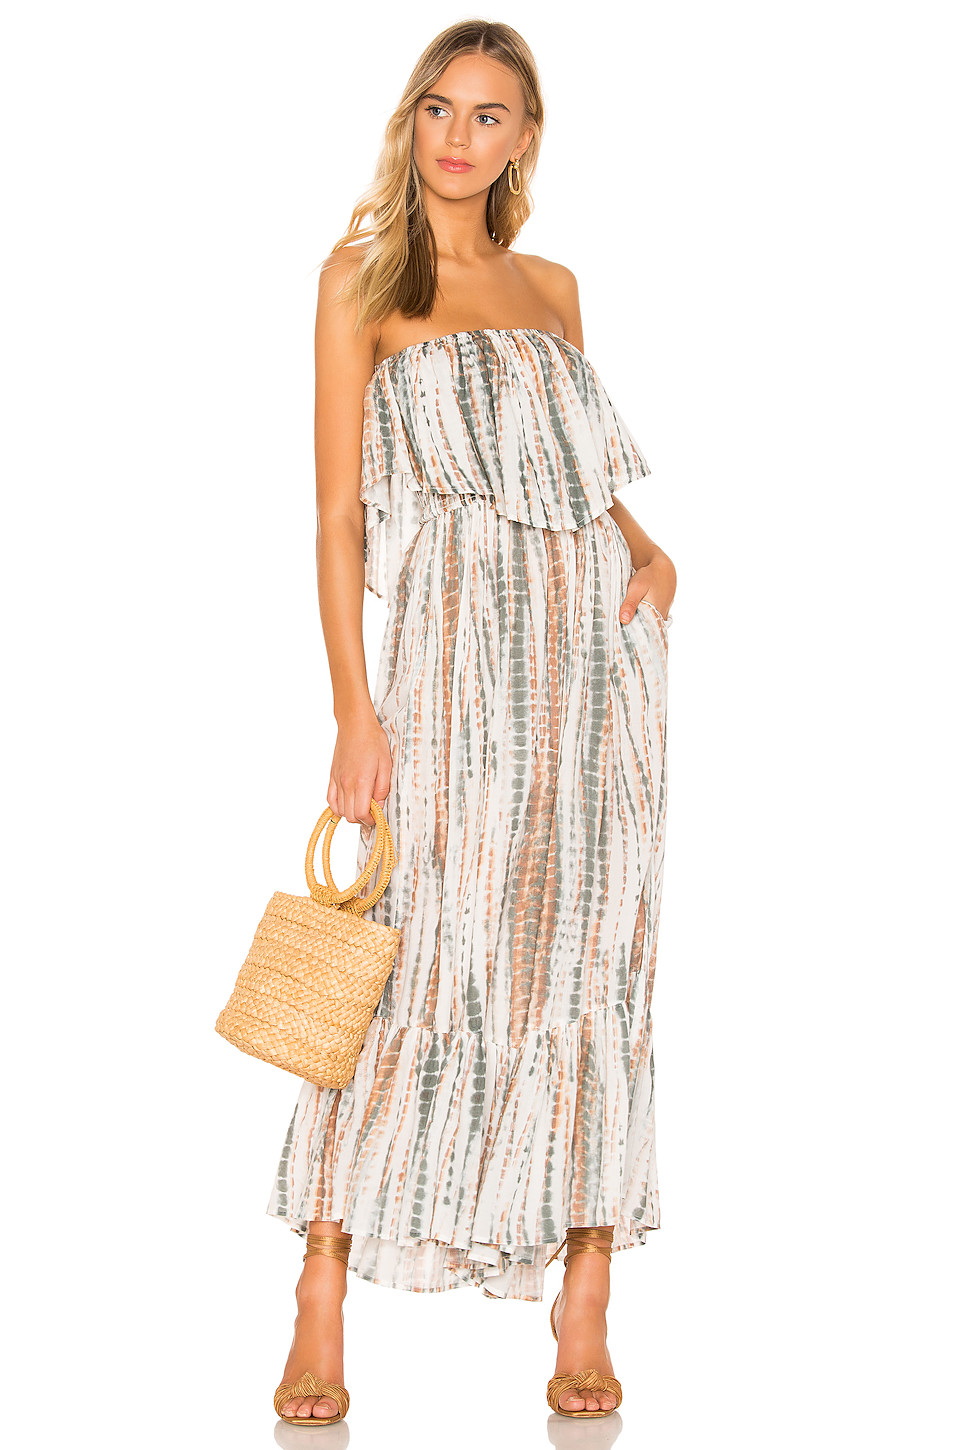 5caa4789e30 Buy Original Free People Summer Vibes Tube Jumpsuit at Indonesia ...